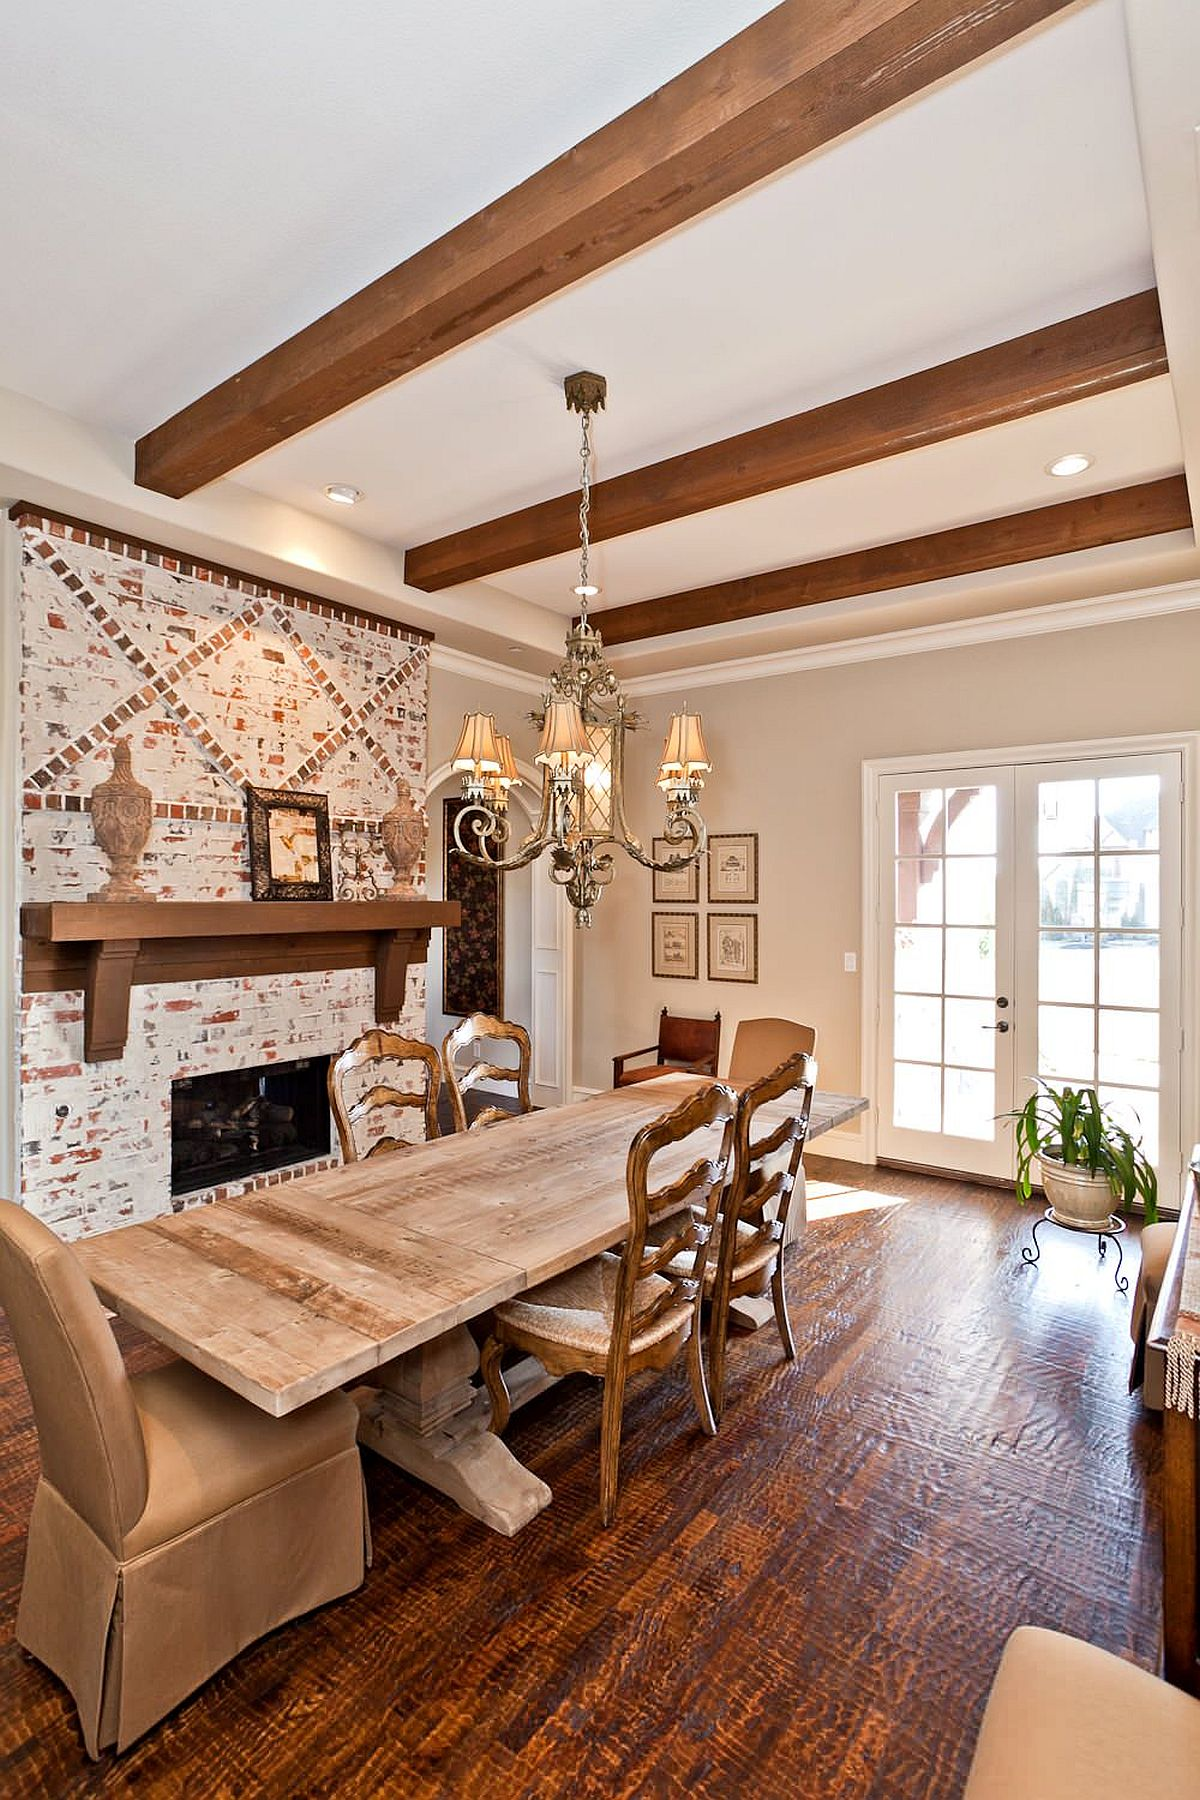 Weathered-brick-wall-backdrop-in-the-dining-room-gives-it-a-timeless-look-19417